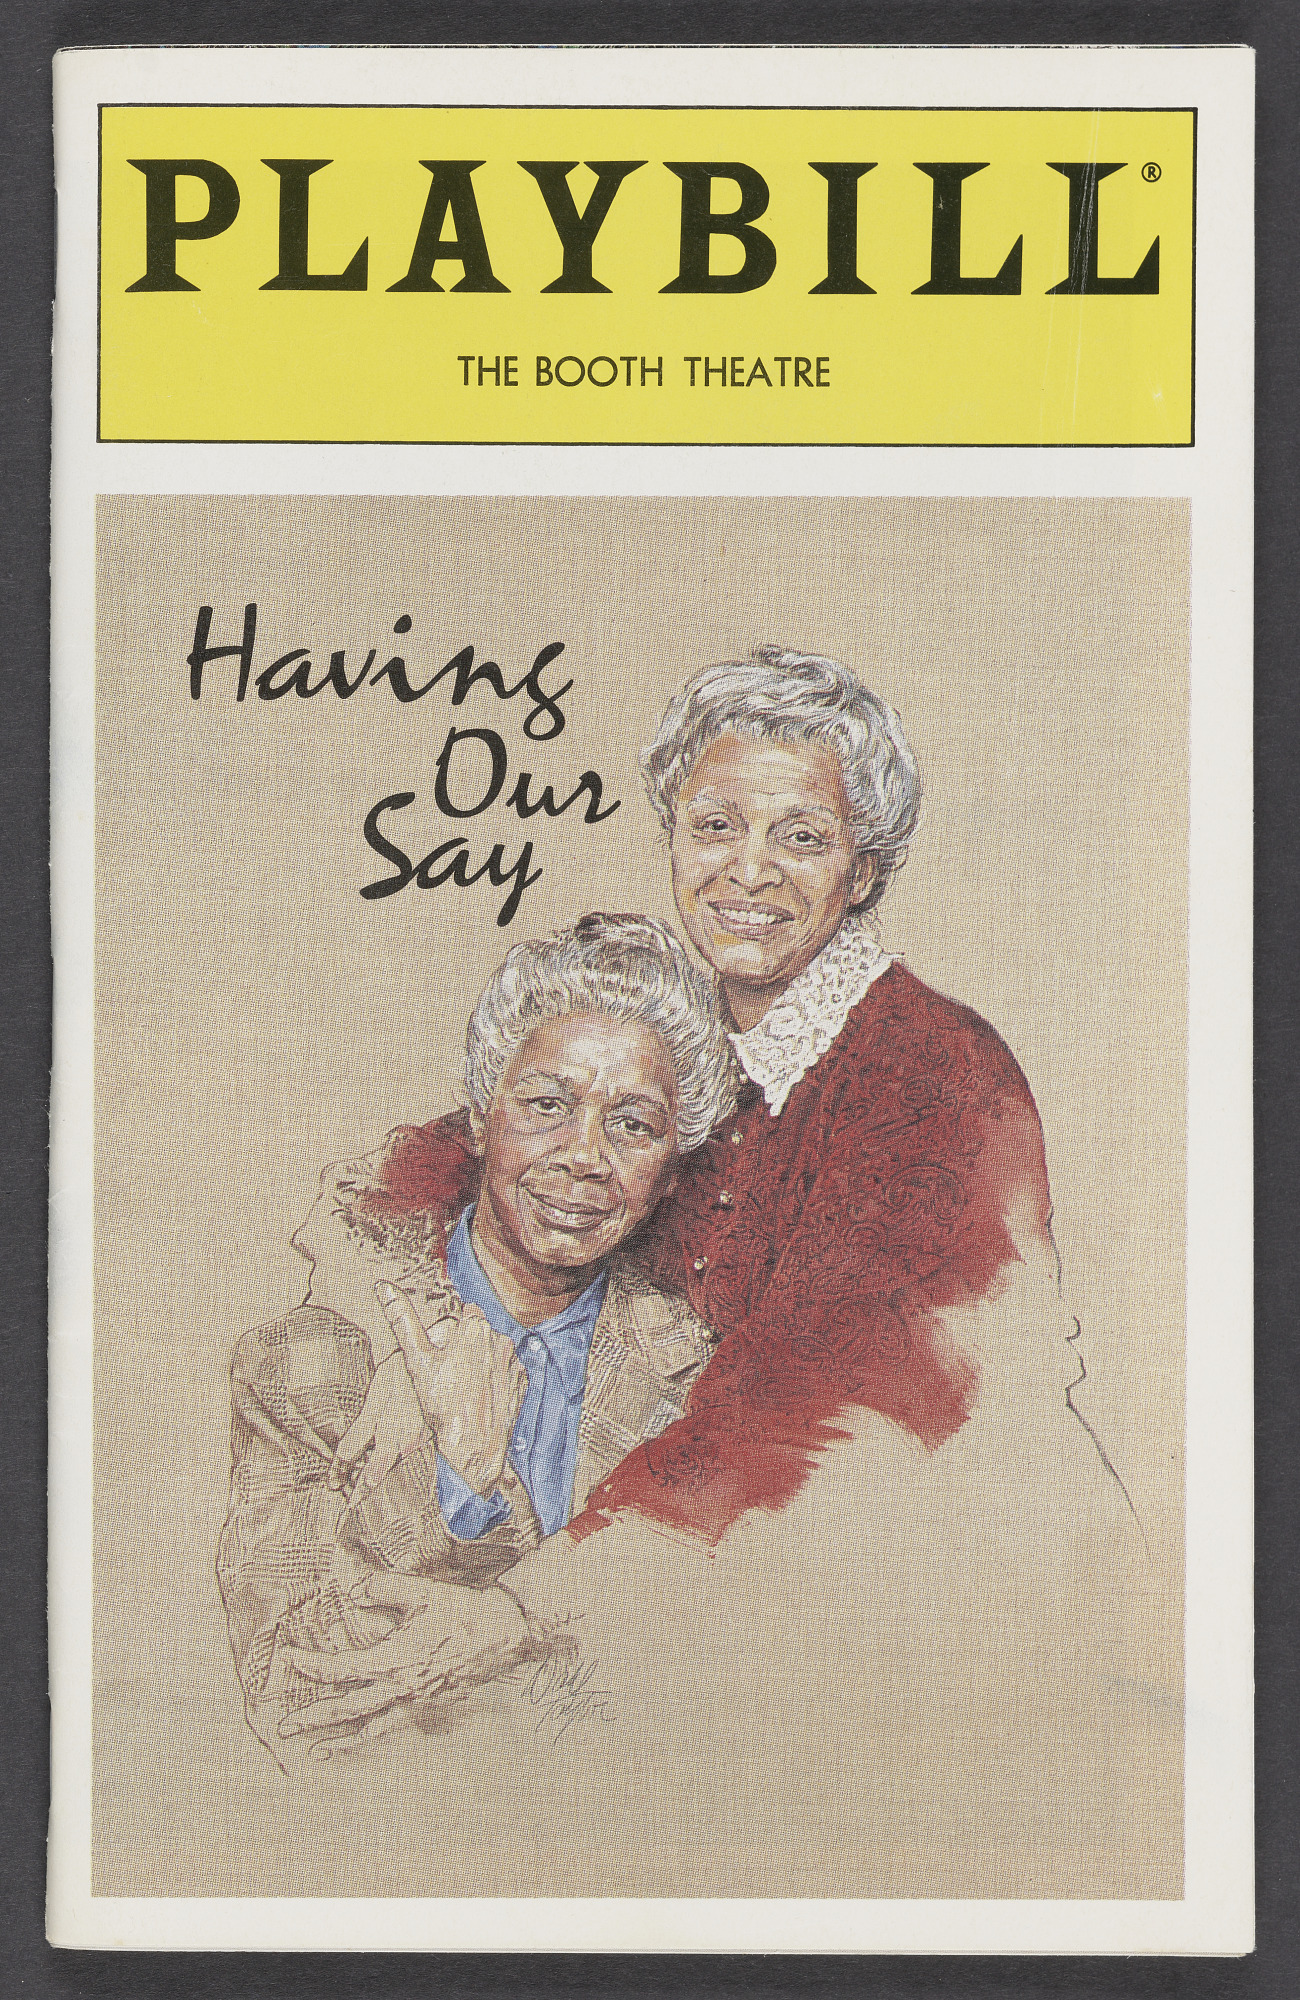 Image for Playbill for Having Our Say